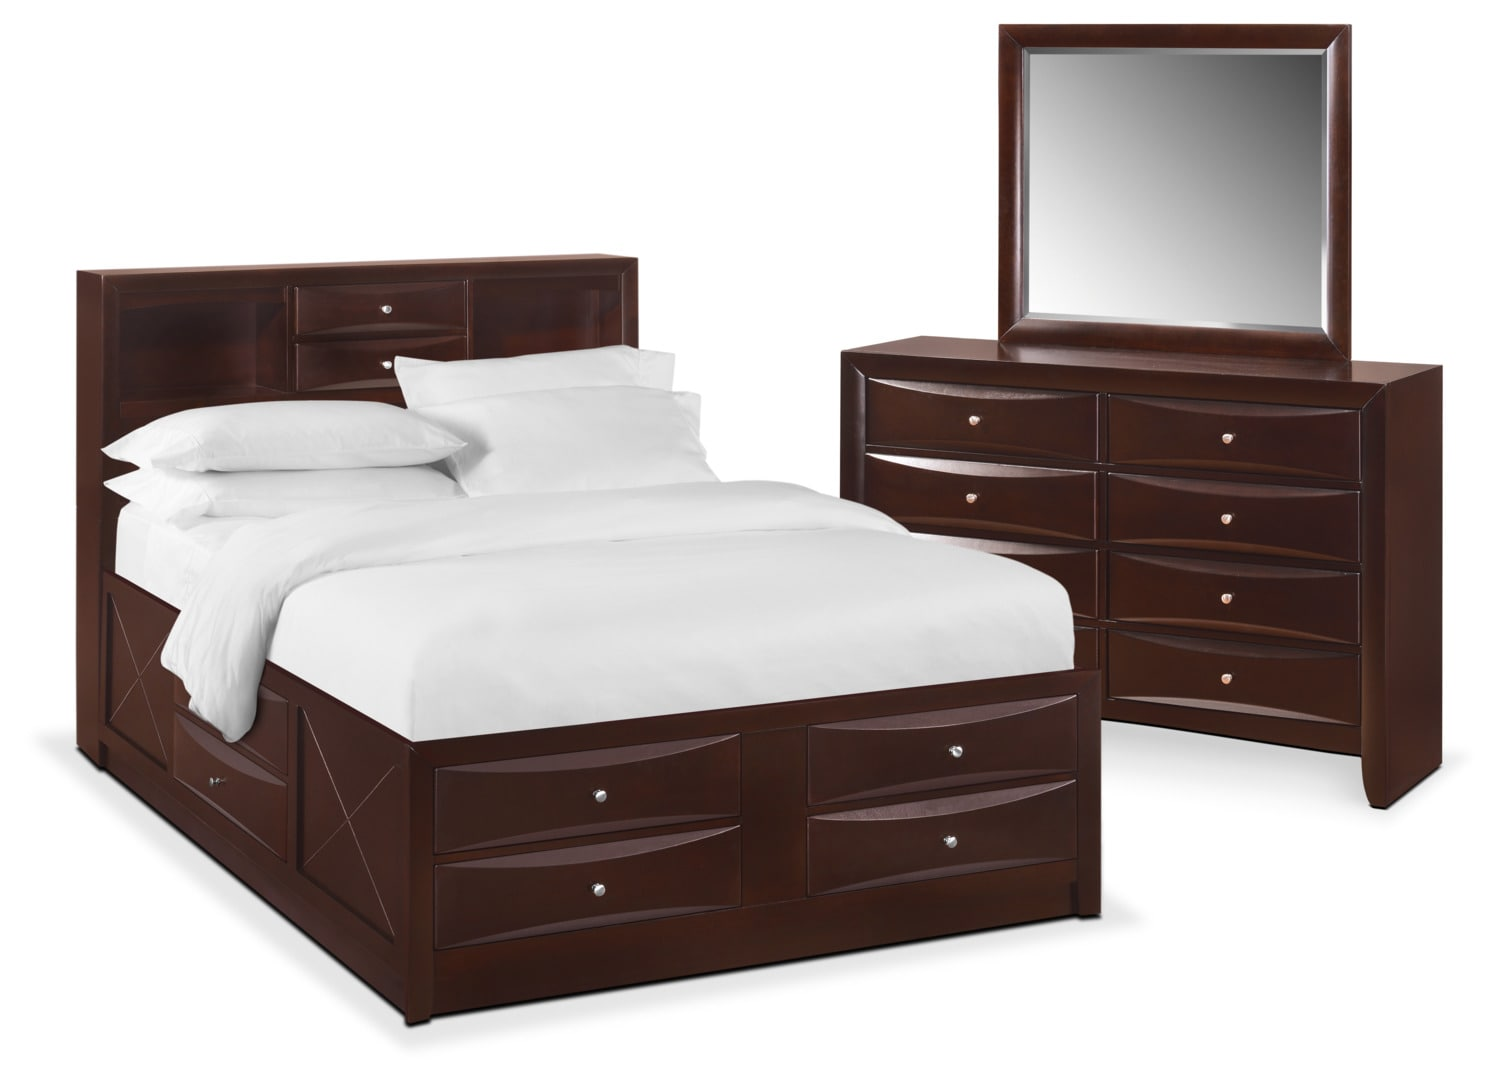 Bedroom Furniture - Braden 5-Piece Bookcase Bedroom Set with Storage, Dresser and Mirror